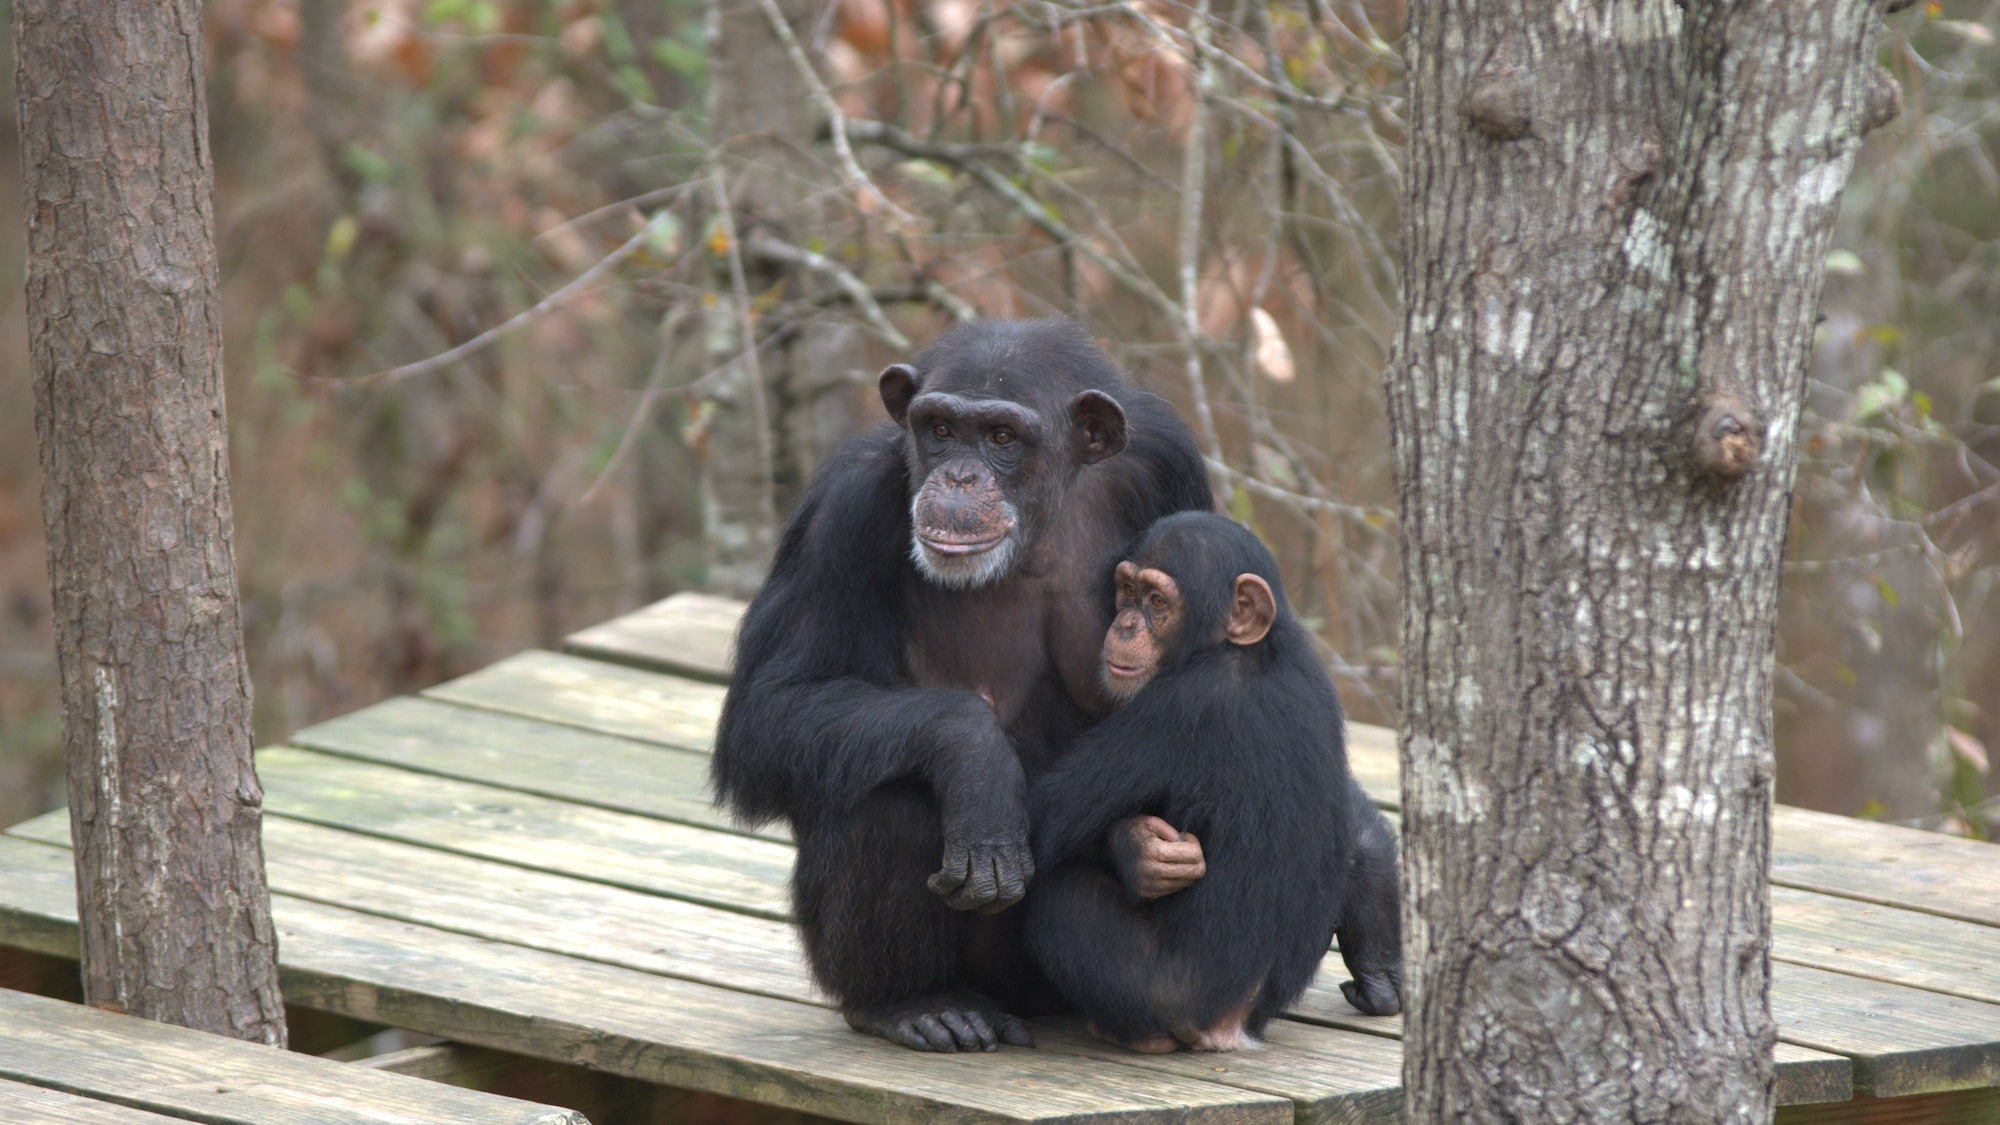 Passion and baby Carlee having a cuddle on a wooden platform in the trees. Sara Soda's group. (Nicholas Chapoy)